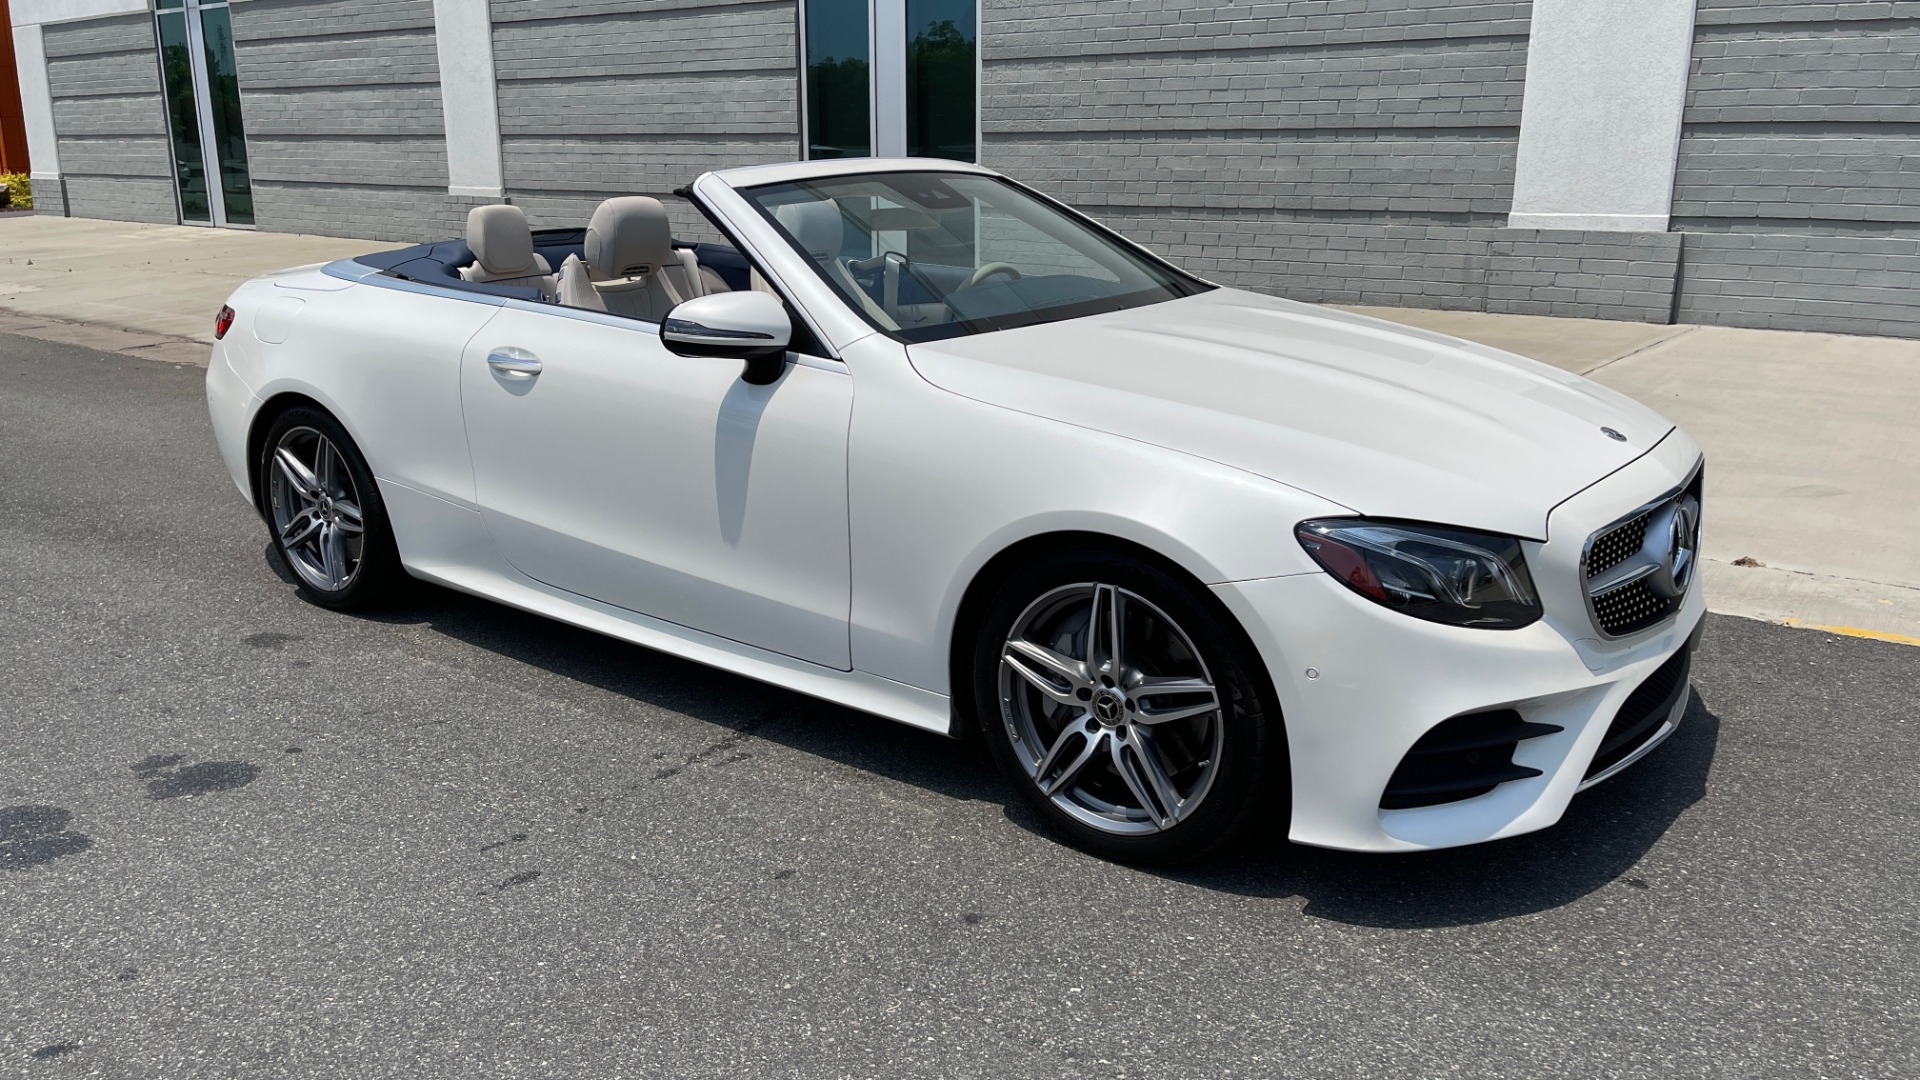 Used 2018 Mercedes-Benz E-CLASS E 400 CABRIOLET / PREM PKG / AMG LINE / NAV / REARVIEW for sale Sold at Formula Imports in Charlotte NC 28227 3